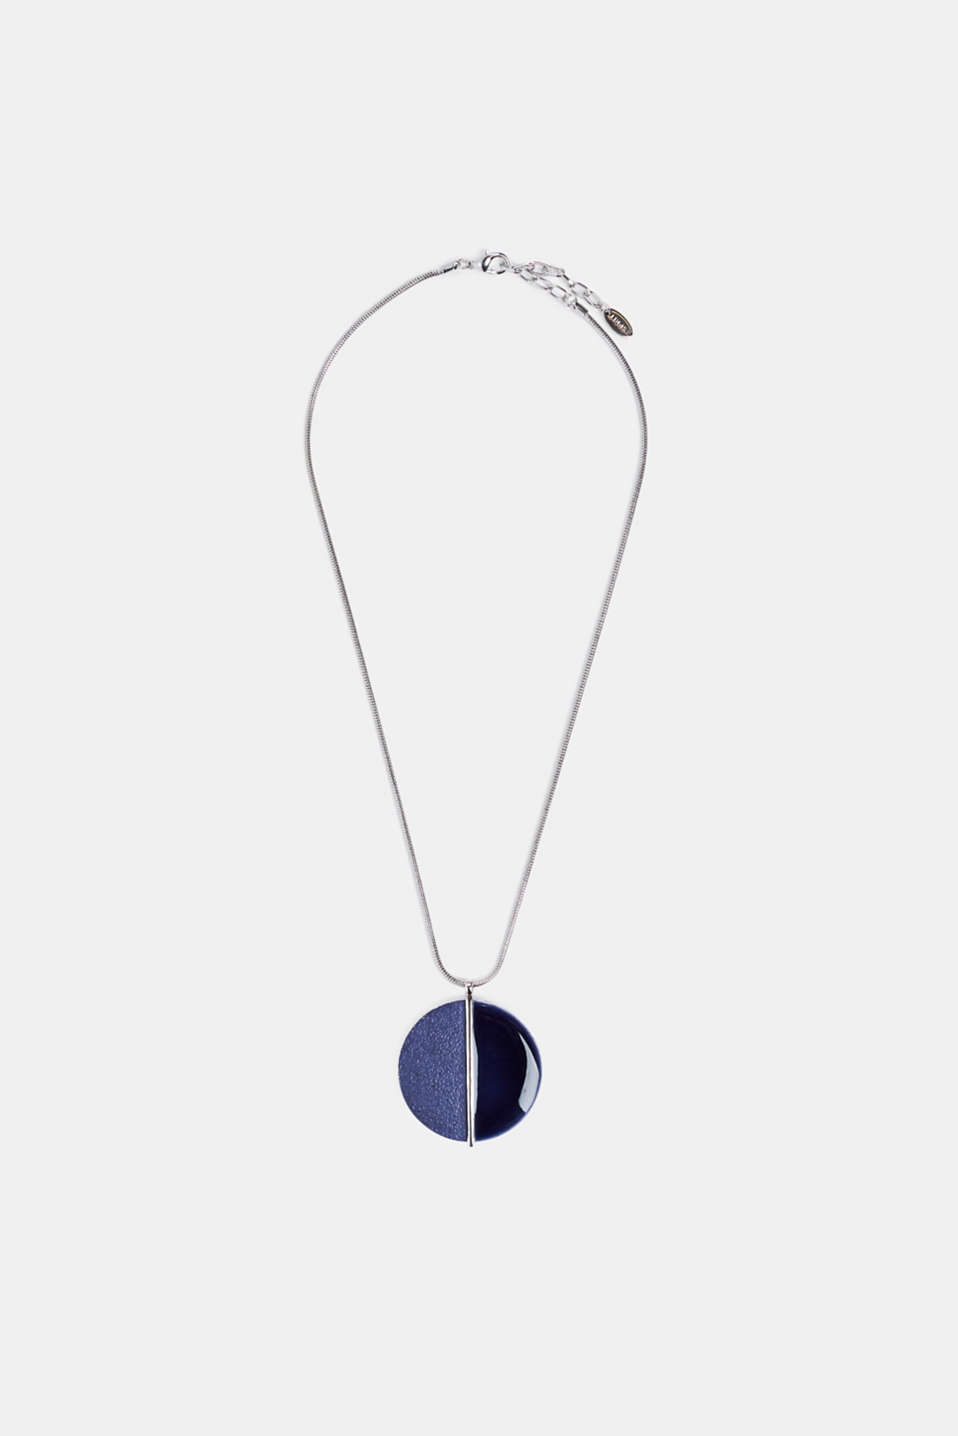 Esprit - Necklace with a pendant, in metal